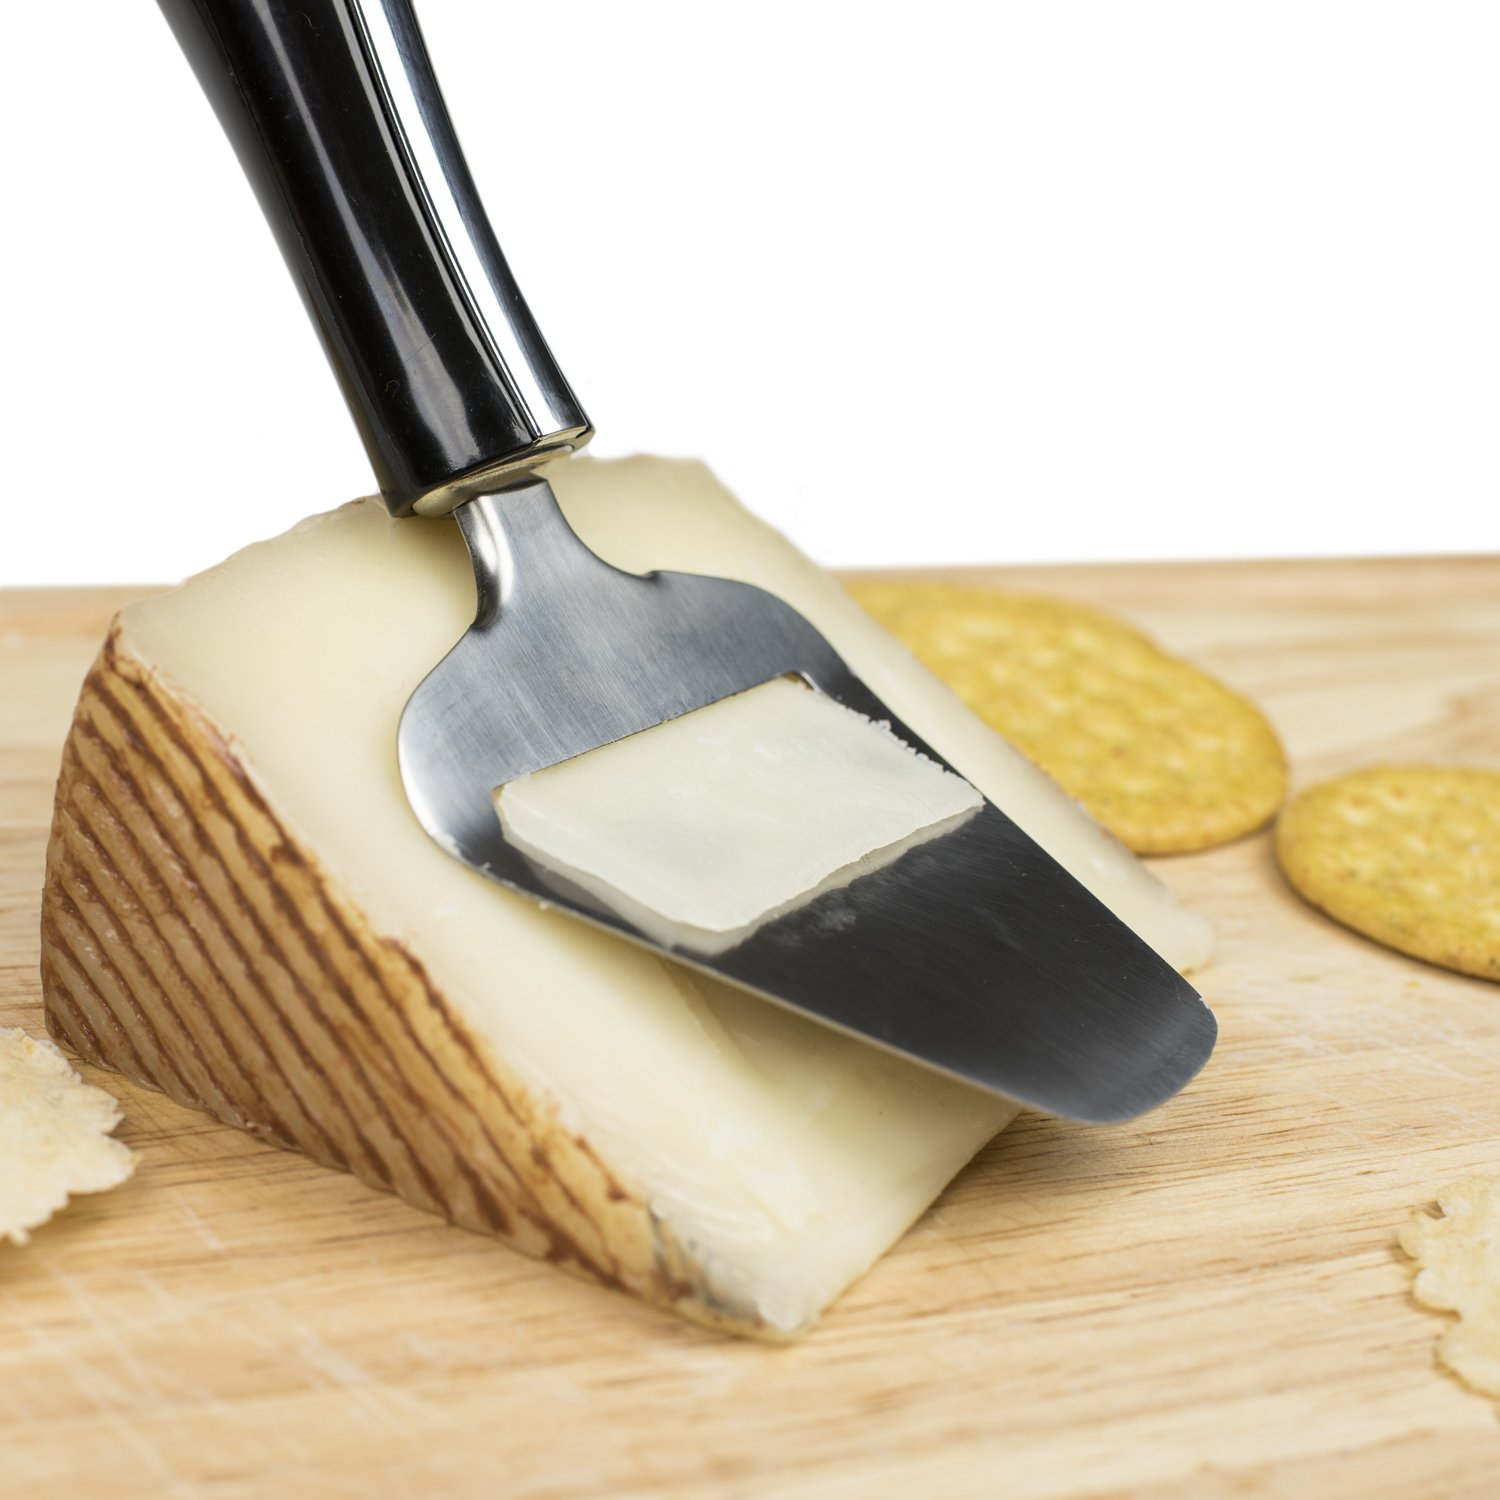 Sharpcart Cheese Slicer